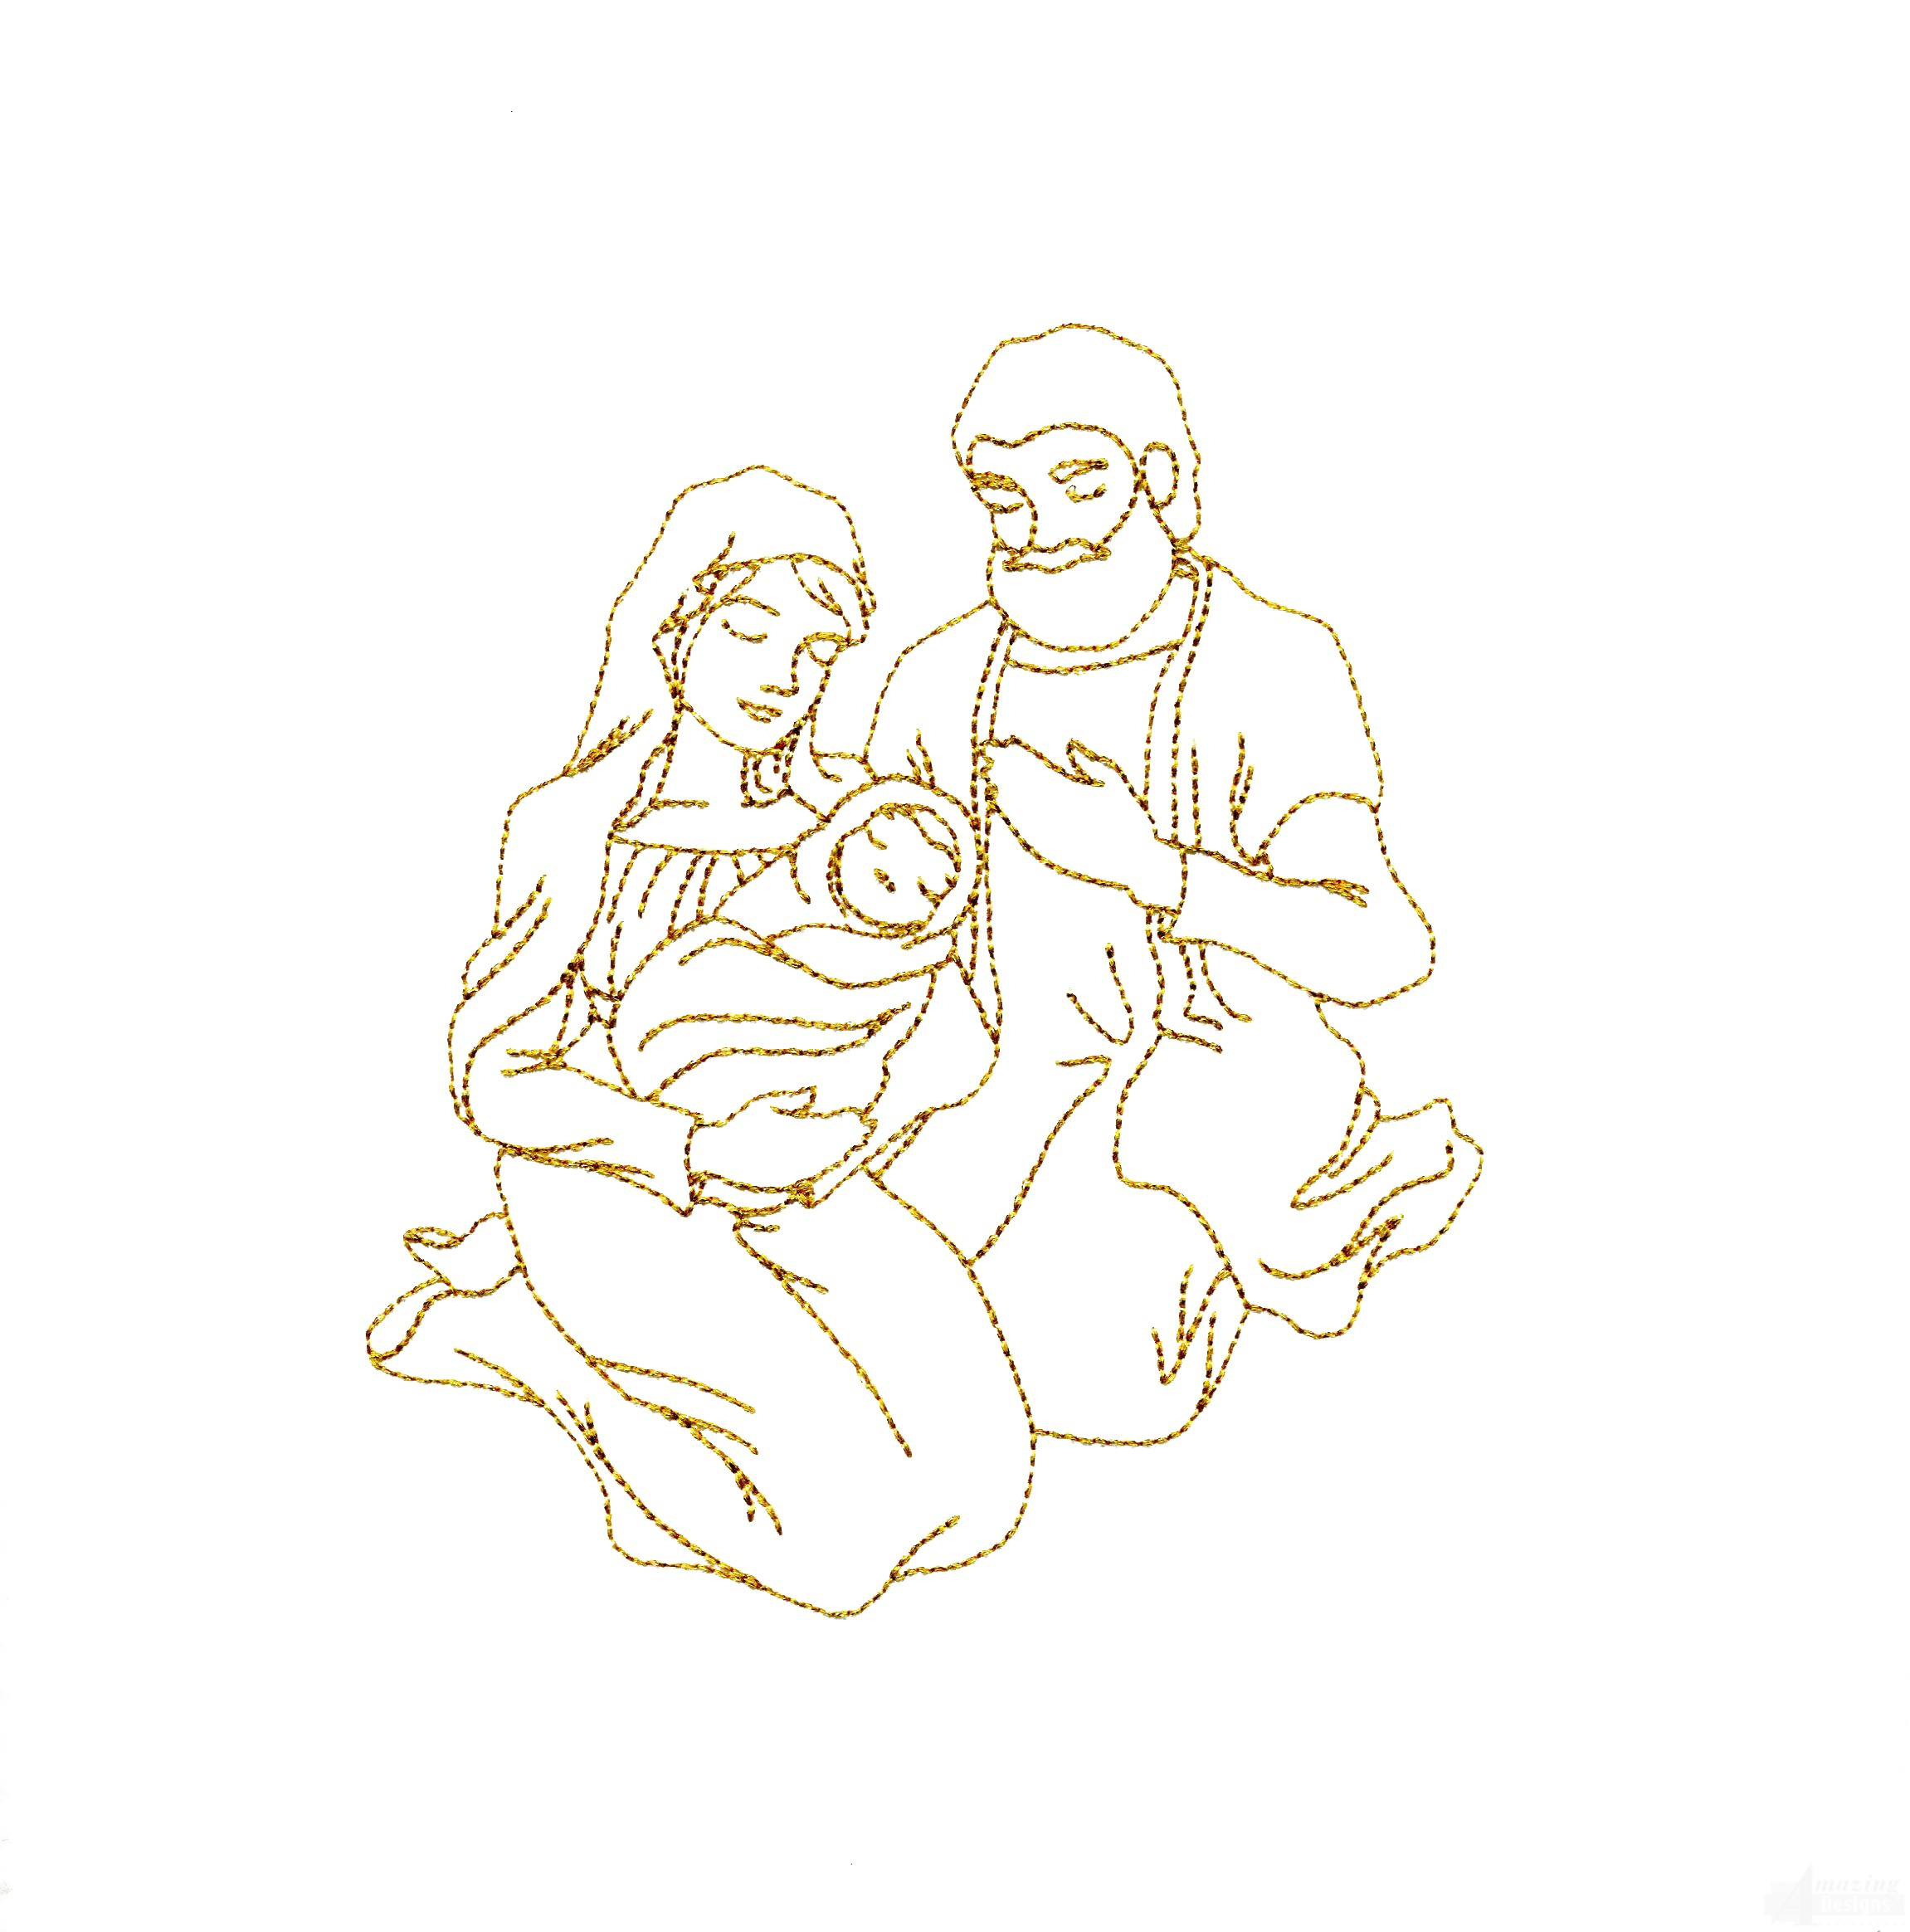 linework baby jesus embroidery design